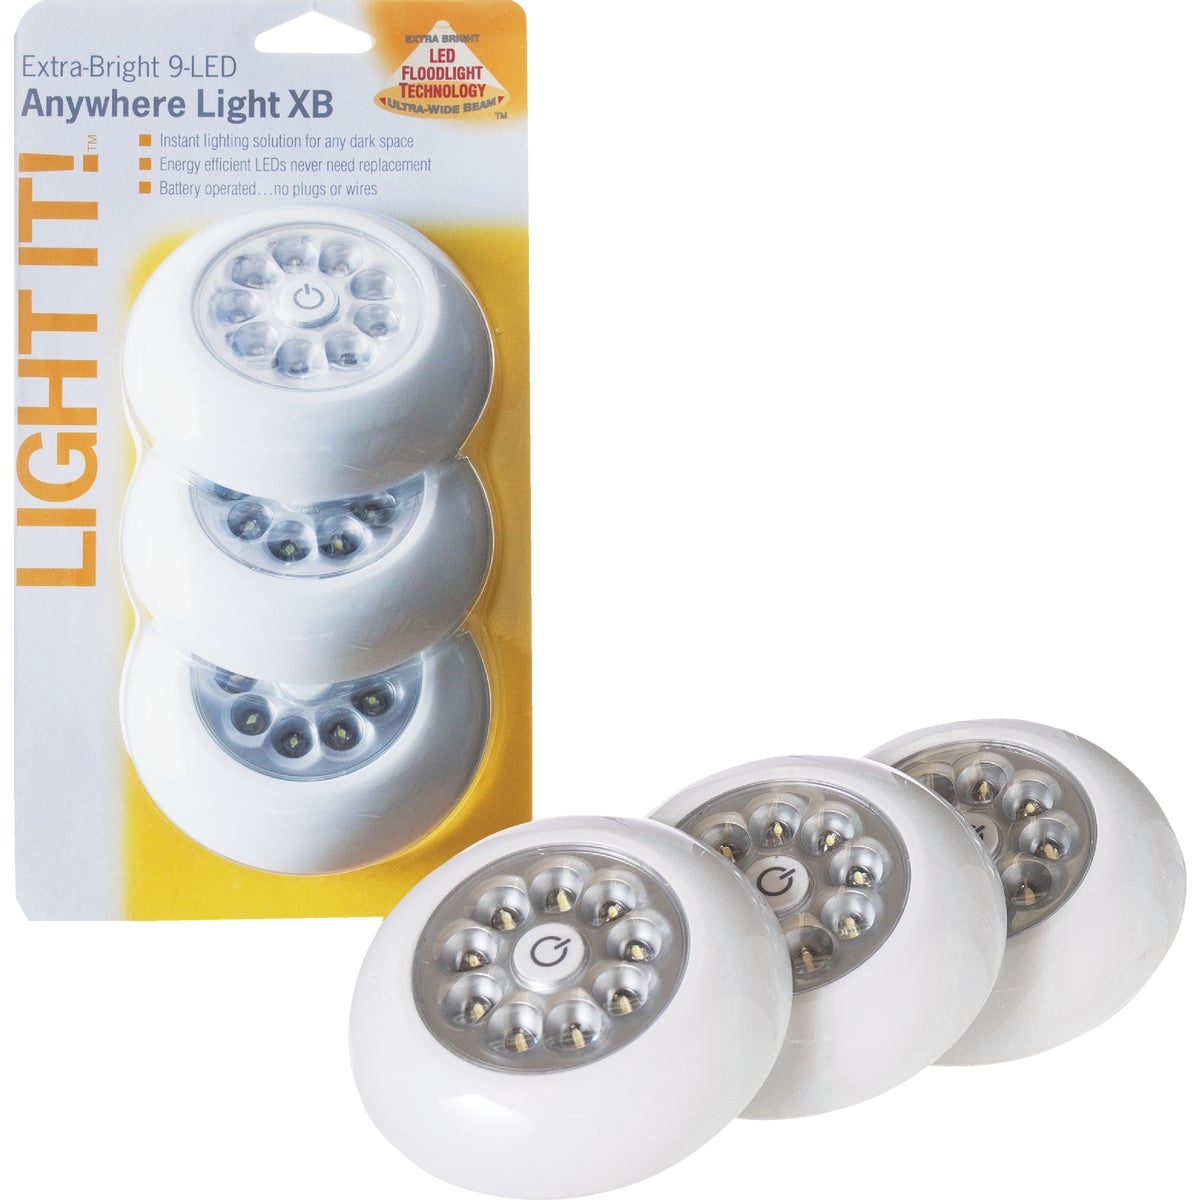 9 LED XB ANYWHERE LIGHT - 30016-308 by Fulcrum Products, Inc